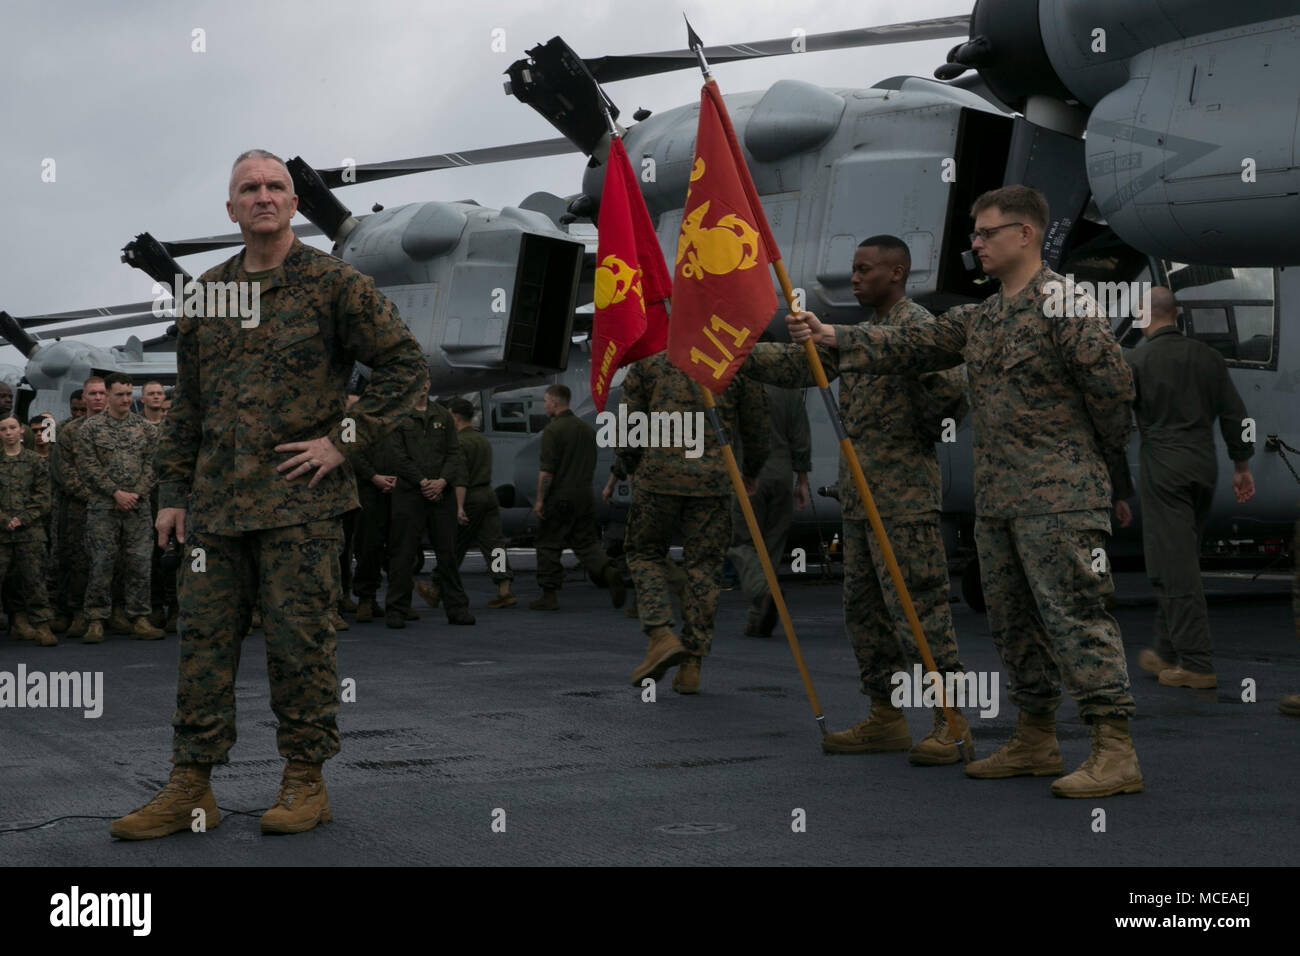 jim lanham sergeant major of the 31st marine expeditionary unit stands before the 31st meu during an all hands formation aboard the uss wasp lhd 1 while